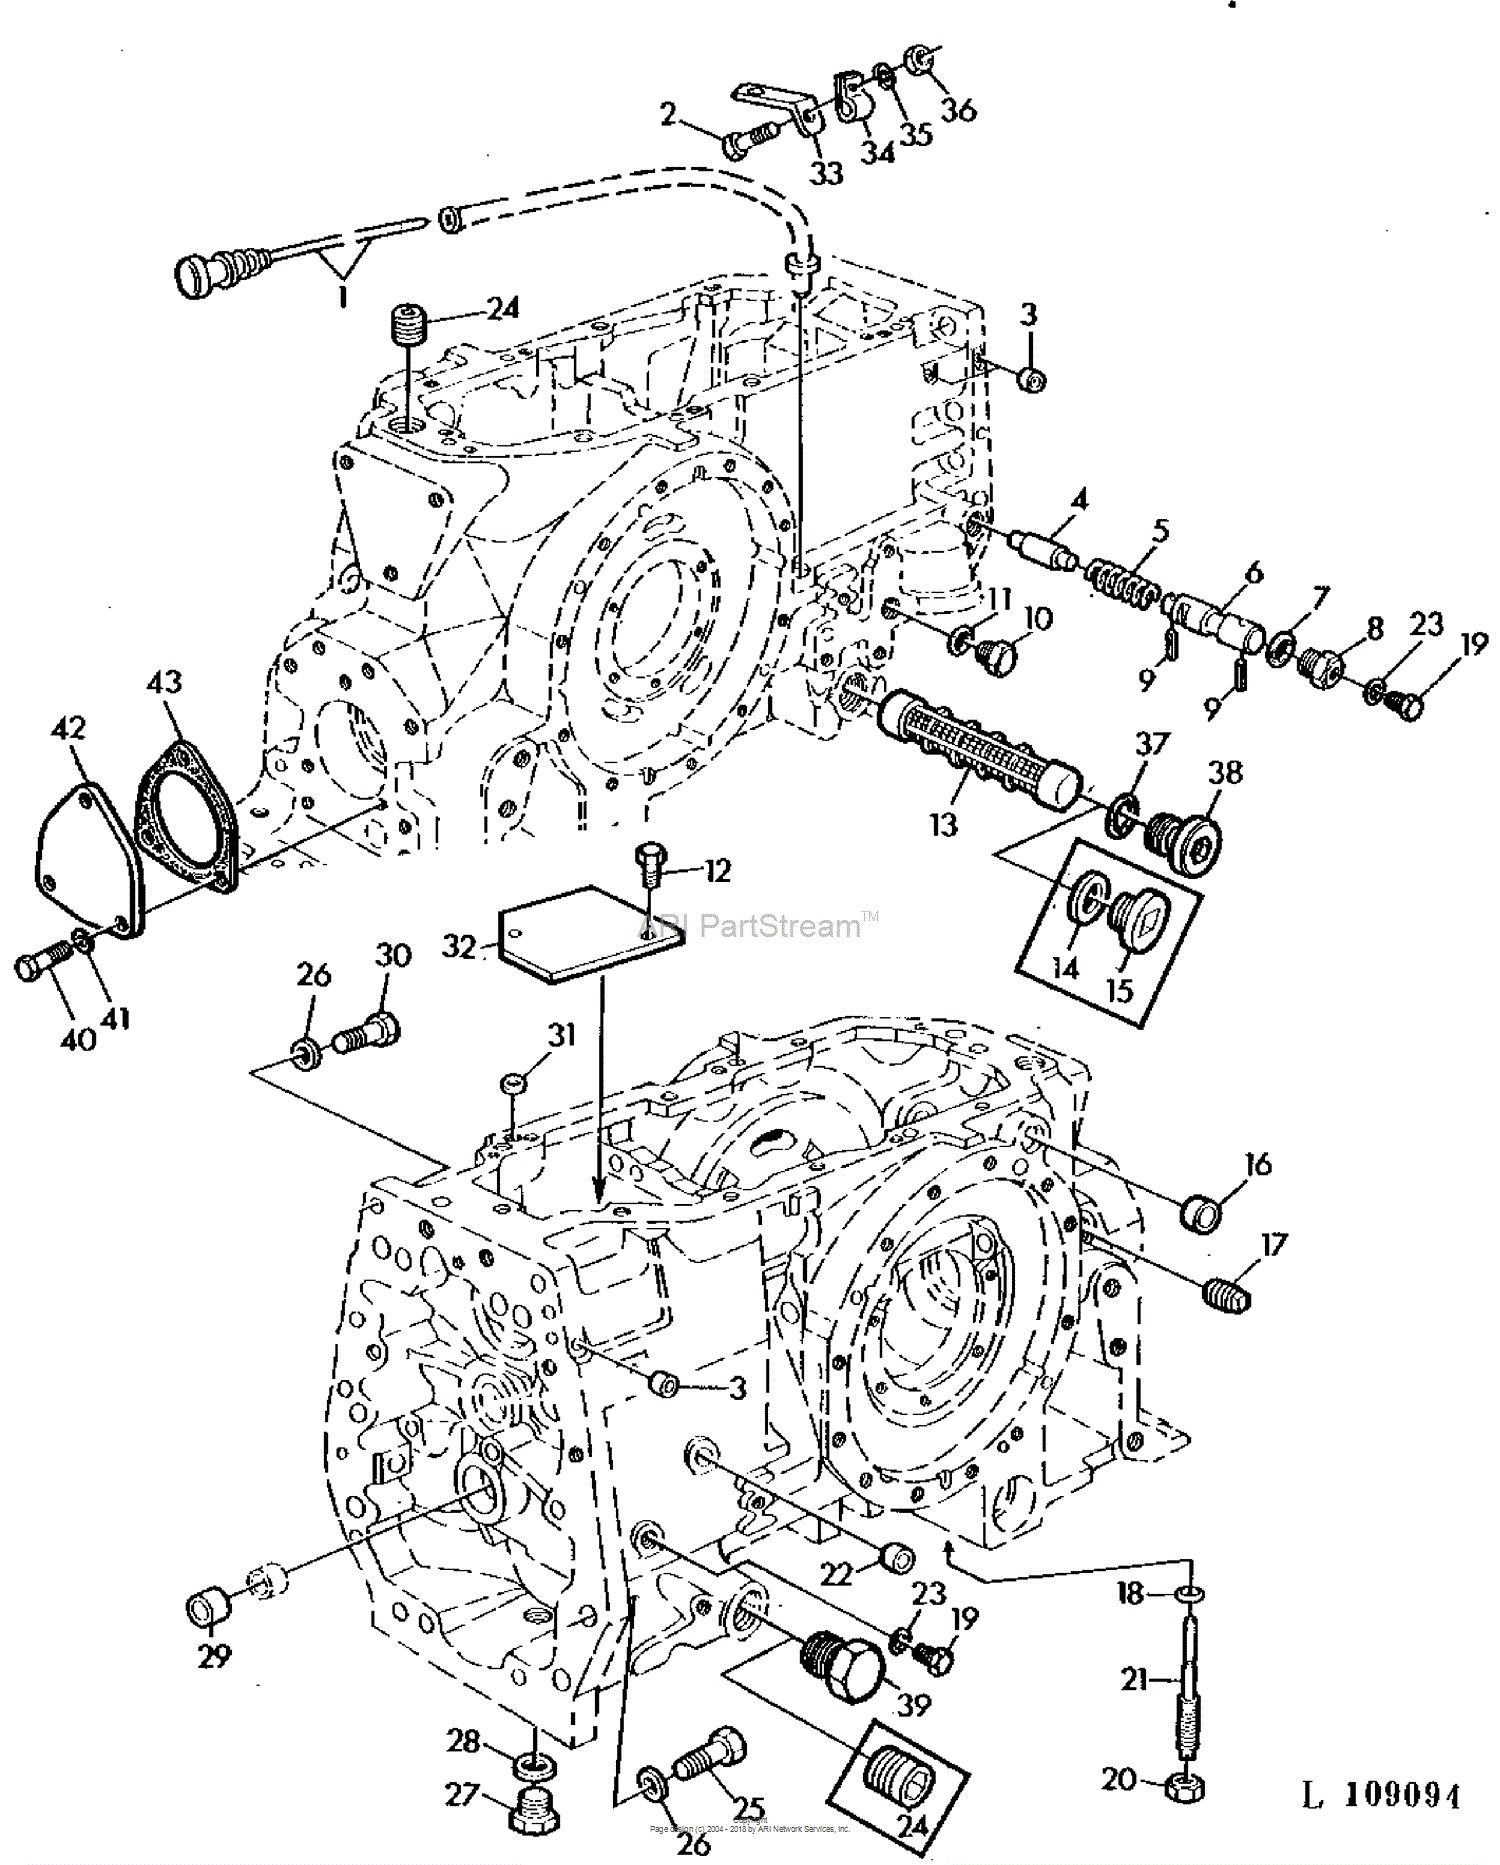 Tractor Engine Parts Diagram John Deere Parts Diagrams John Deere 2550 Tractor Pc4187 Of Tractor Engine Parts Diagram